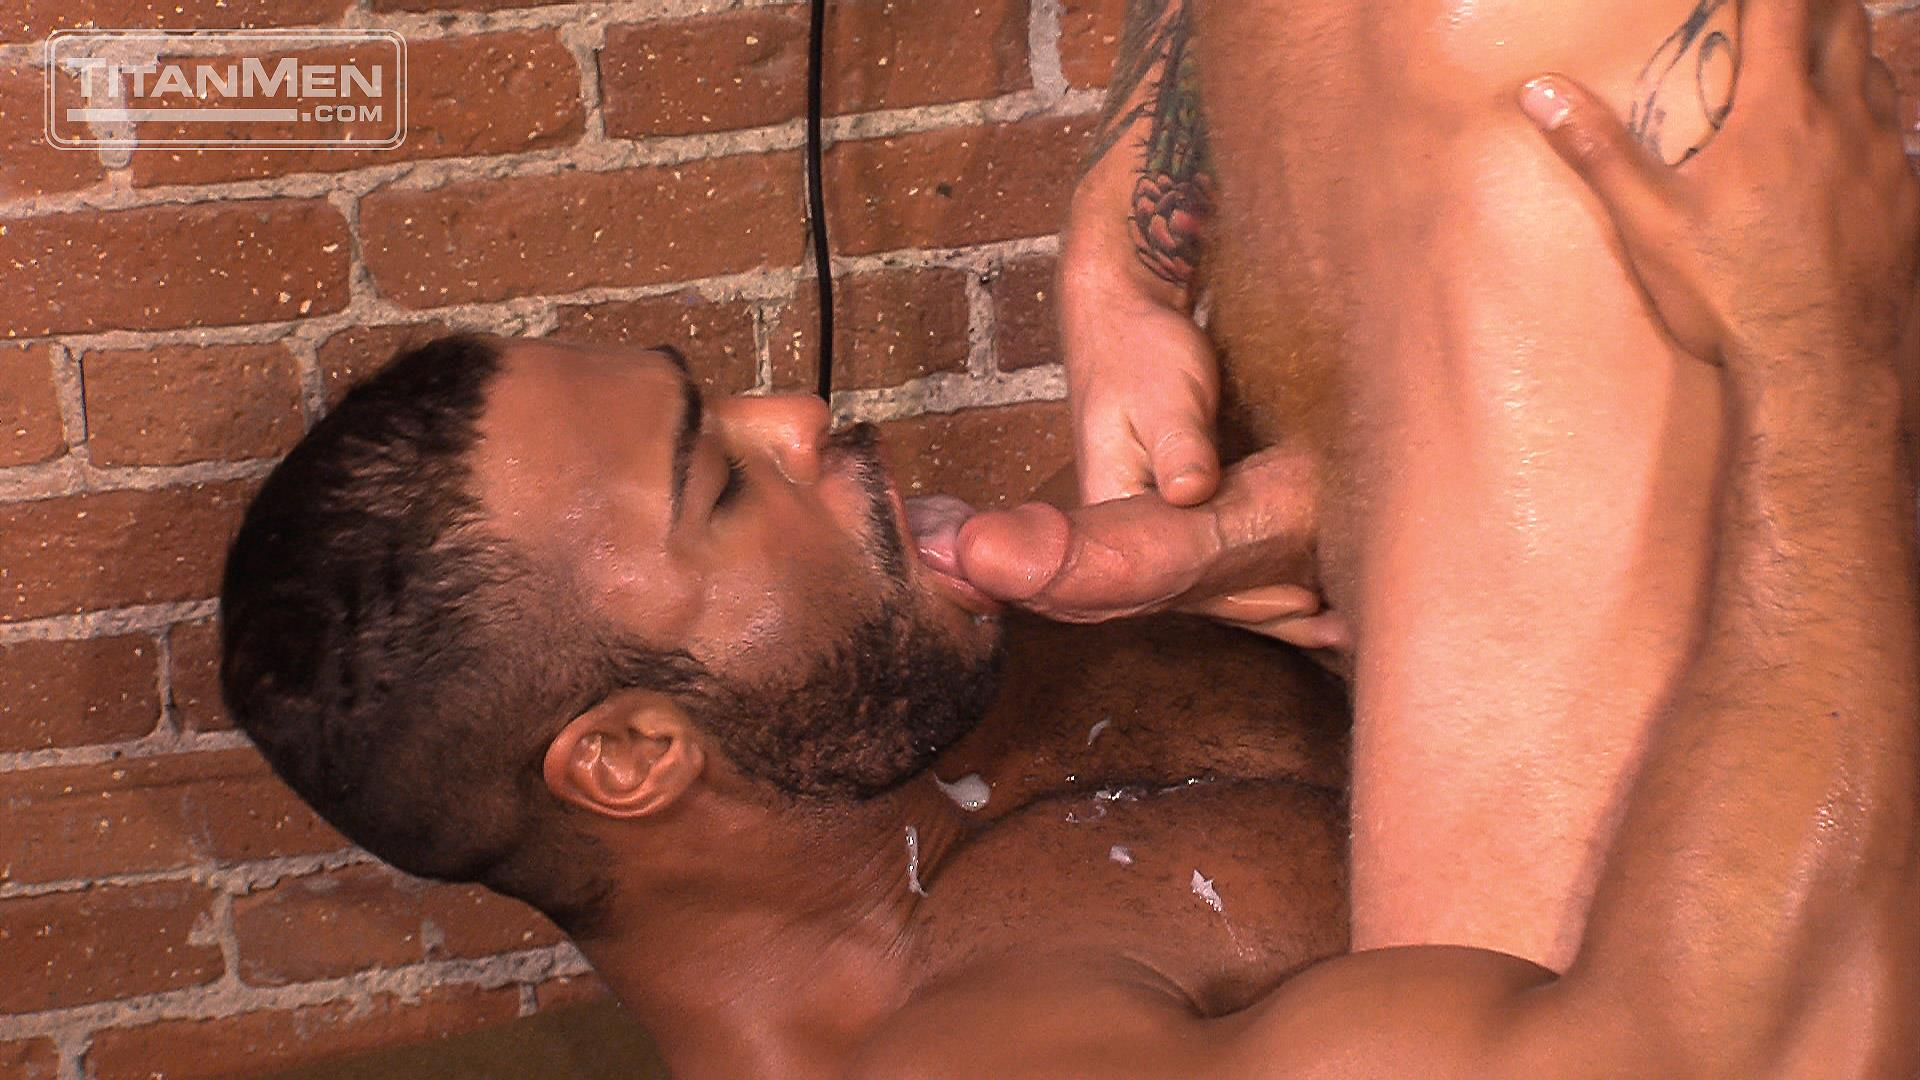 TitanMen-Micah-Brandt-and-Bennett-Anthony-Interracial-Muscle-Hunks-Flip-Fucking-Amateur-Gay-Porn-41 Micah Brandt and Bennett Anthony Flip-Fucking With Their Big Dicks